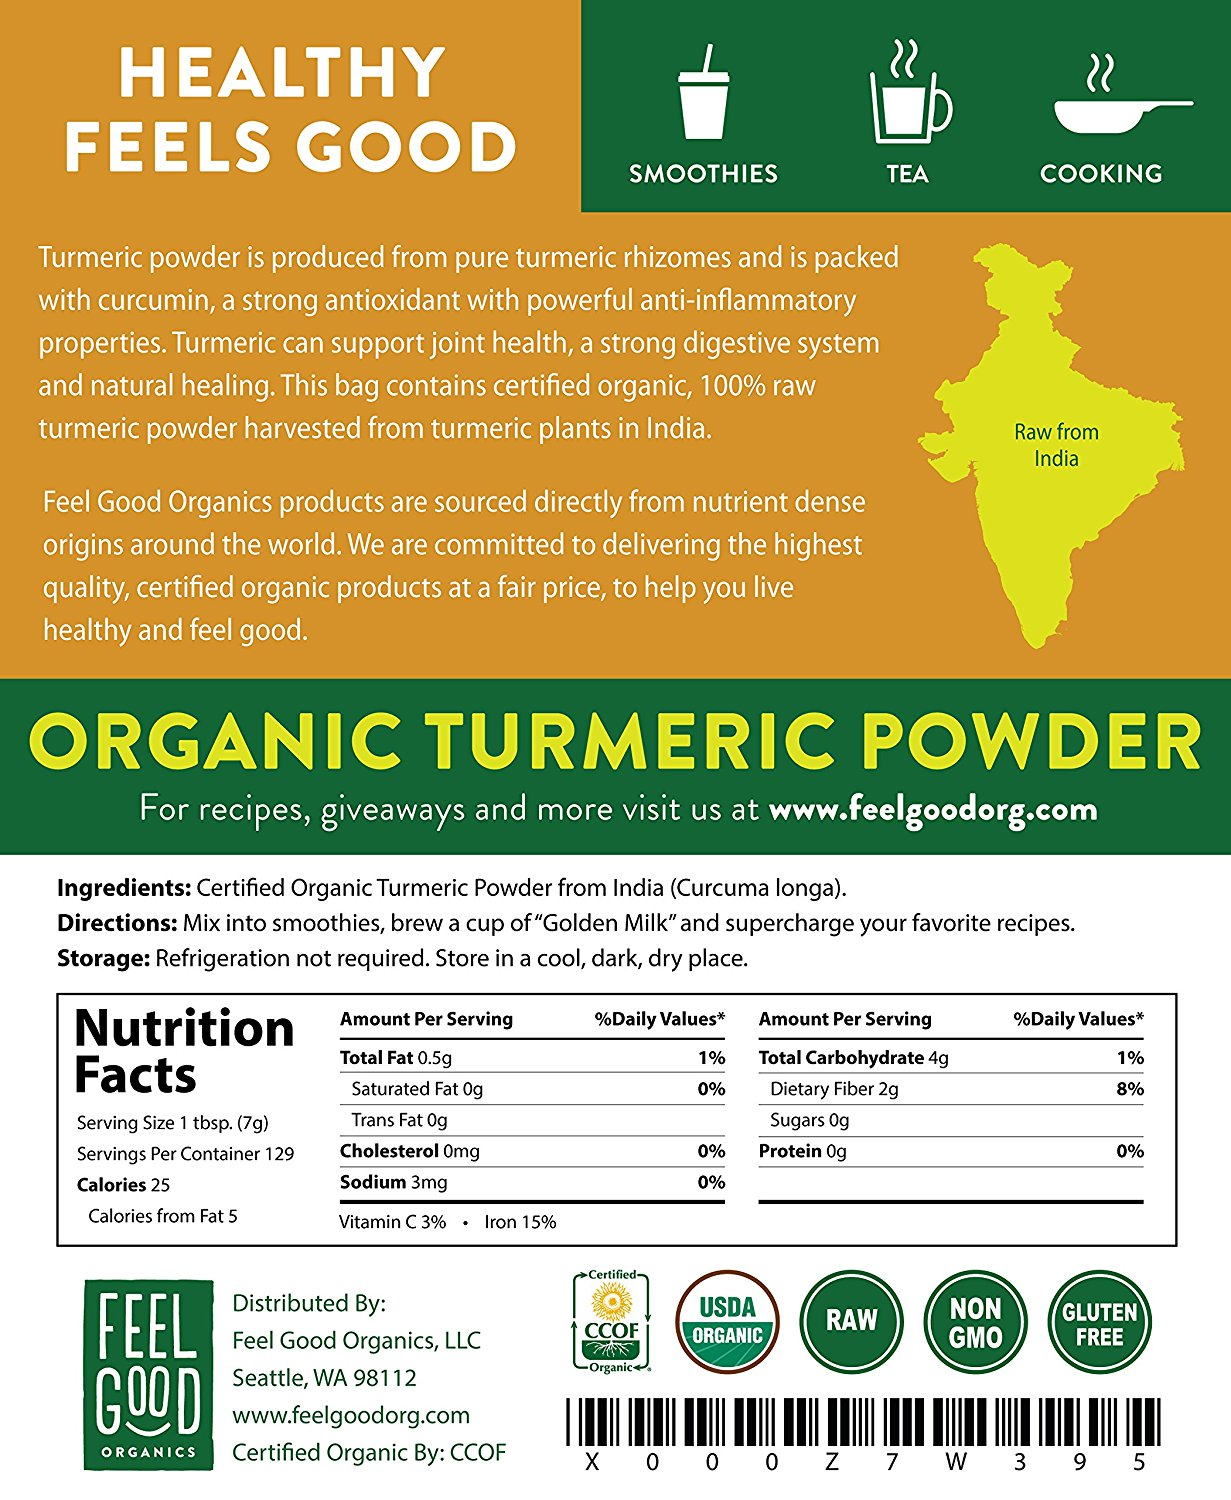 Feelgood Organics Turmeric Powder Nutrition